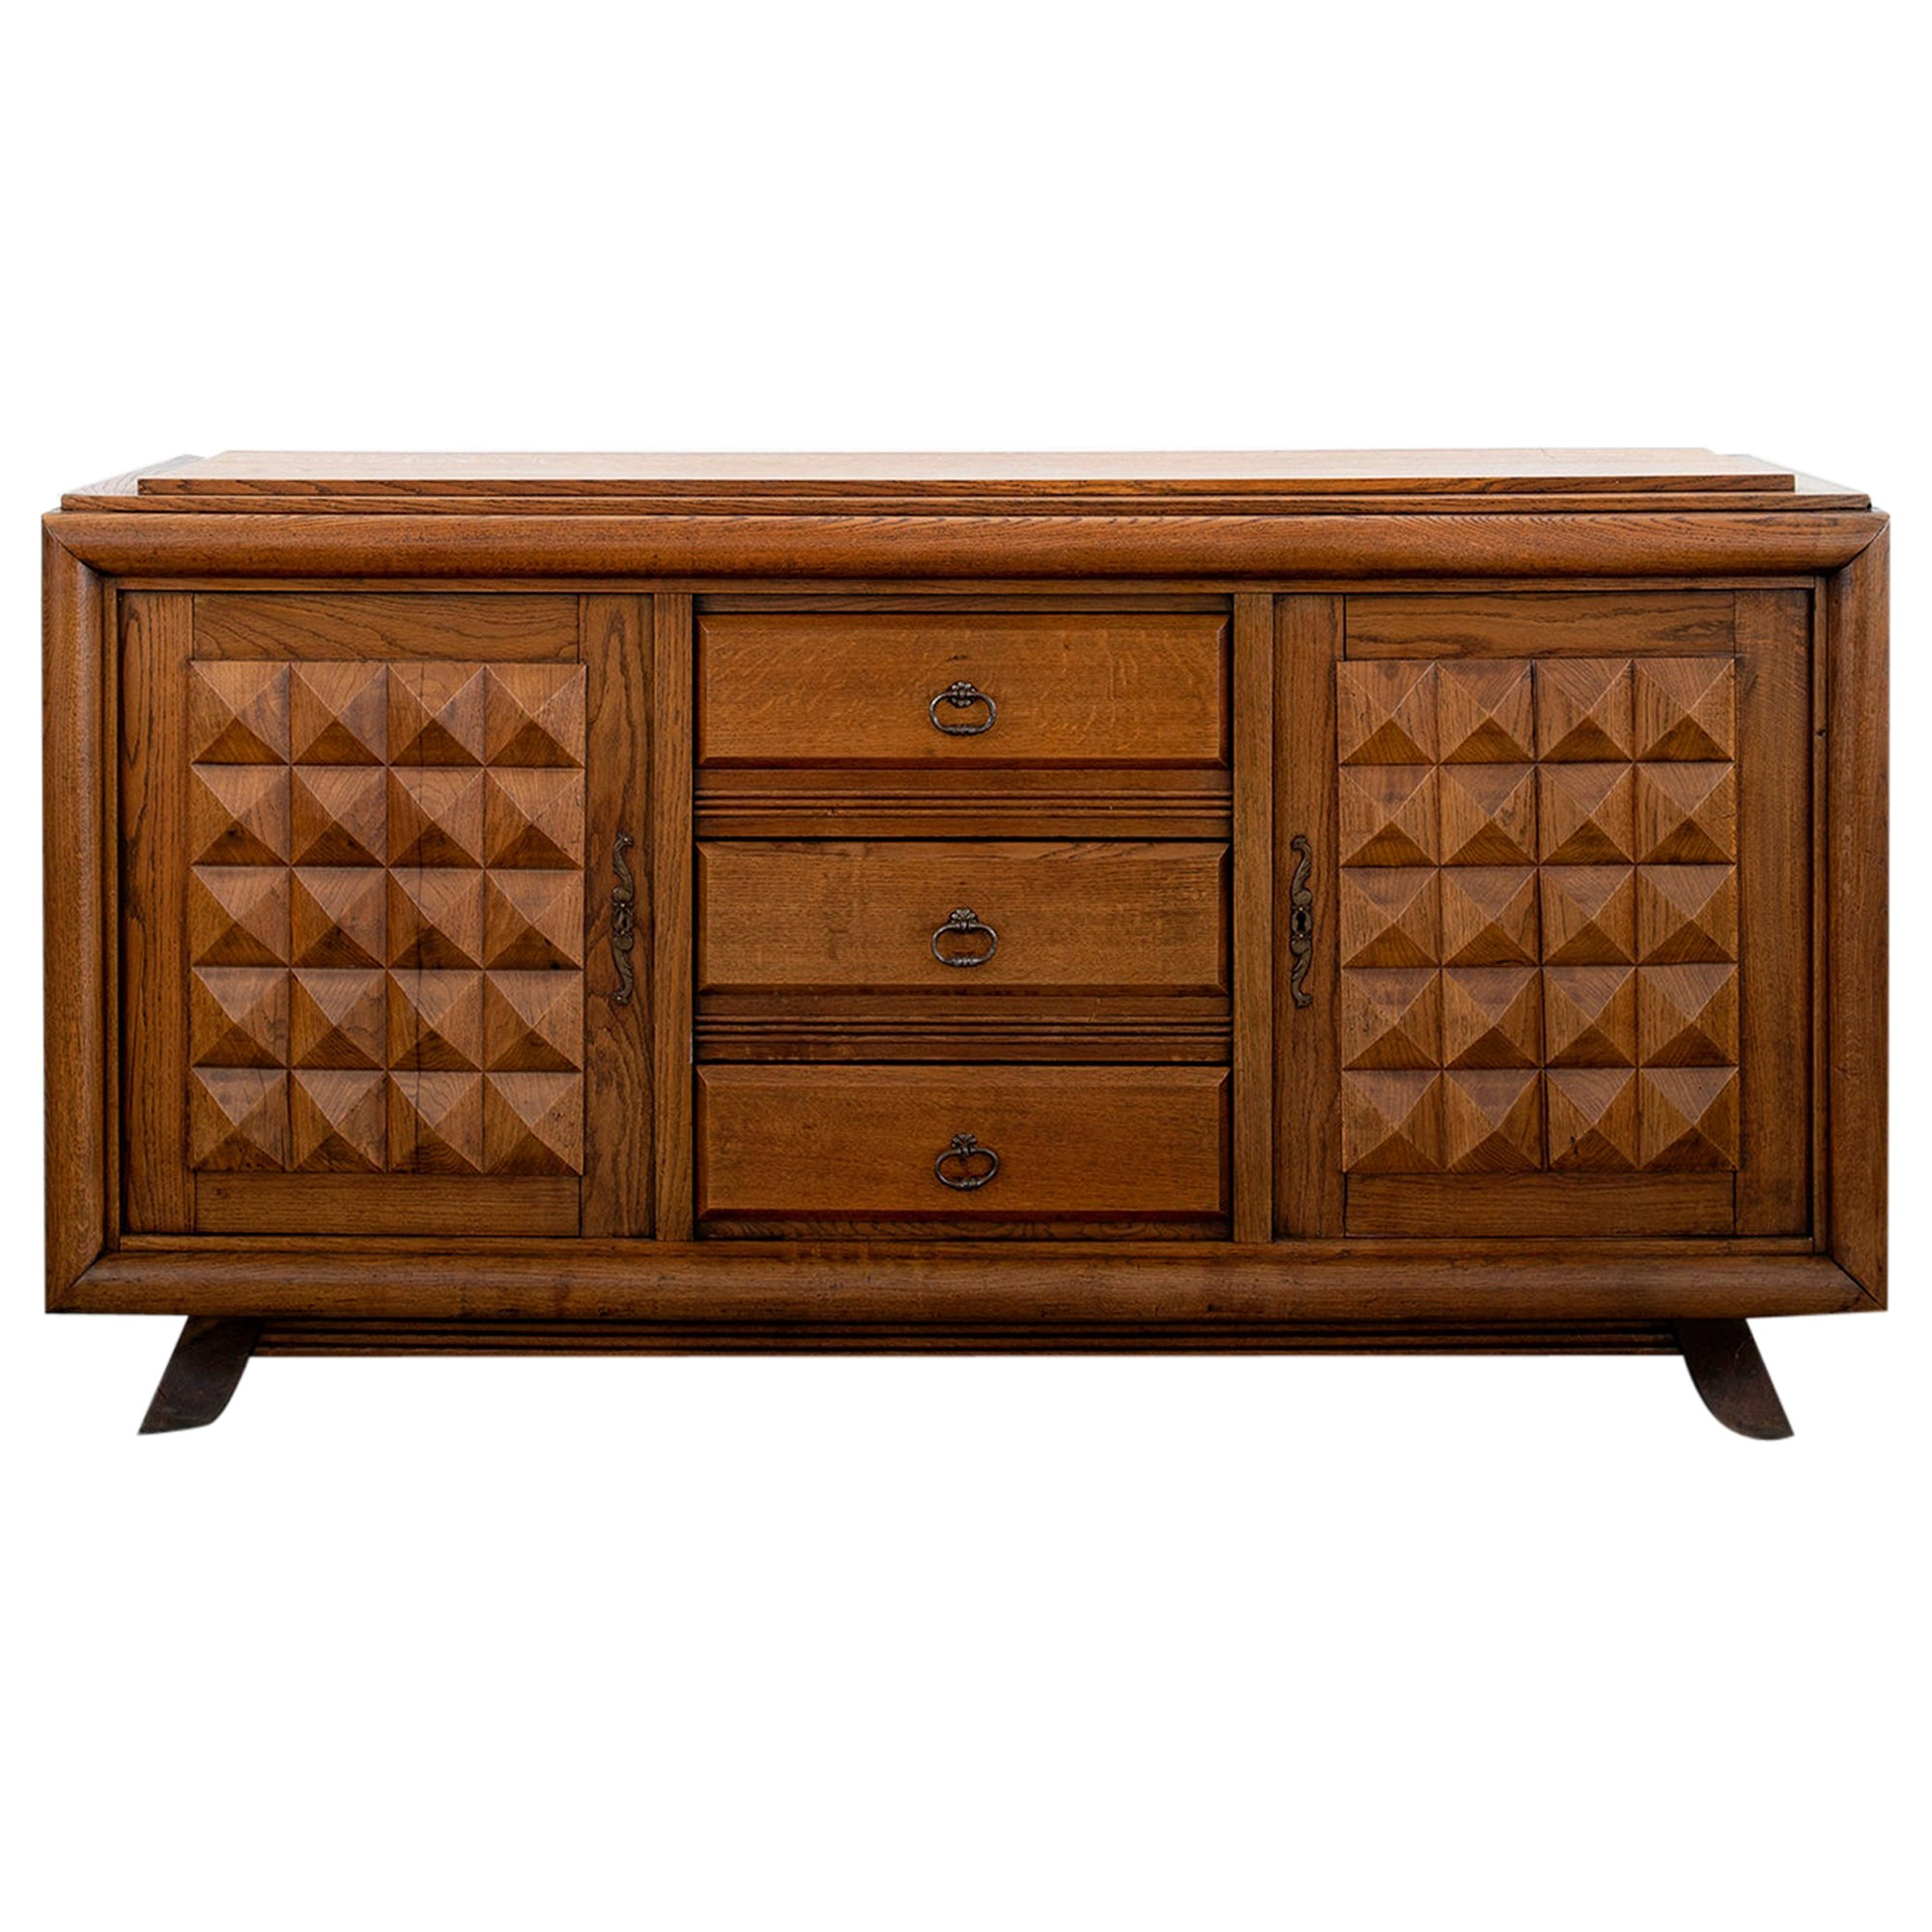 Charles Dudouyt Sideboard, circa 1930s